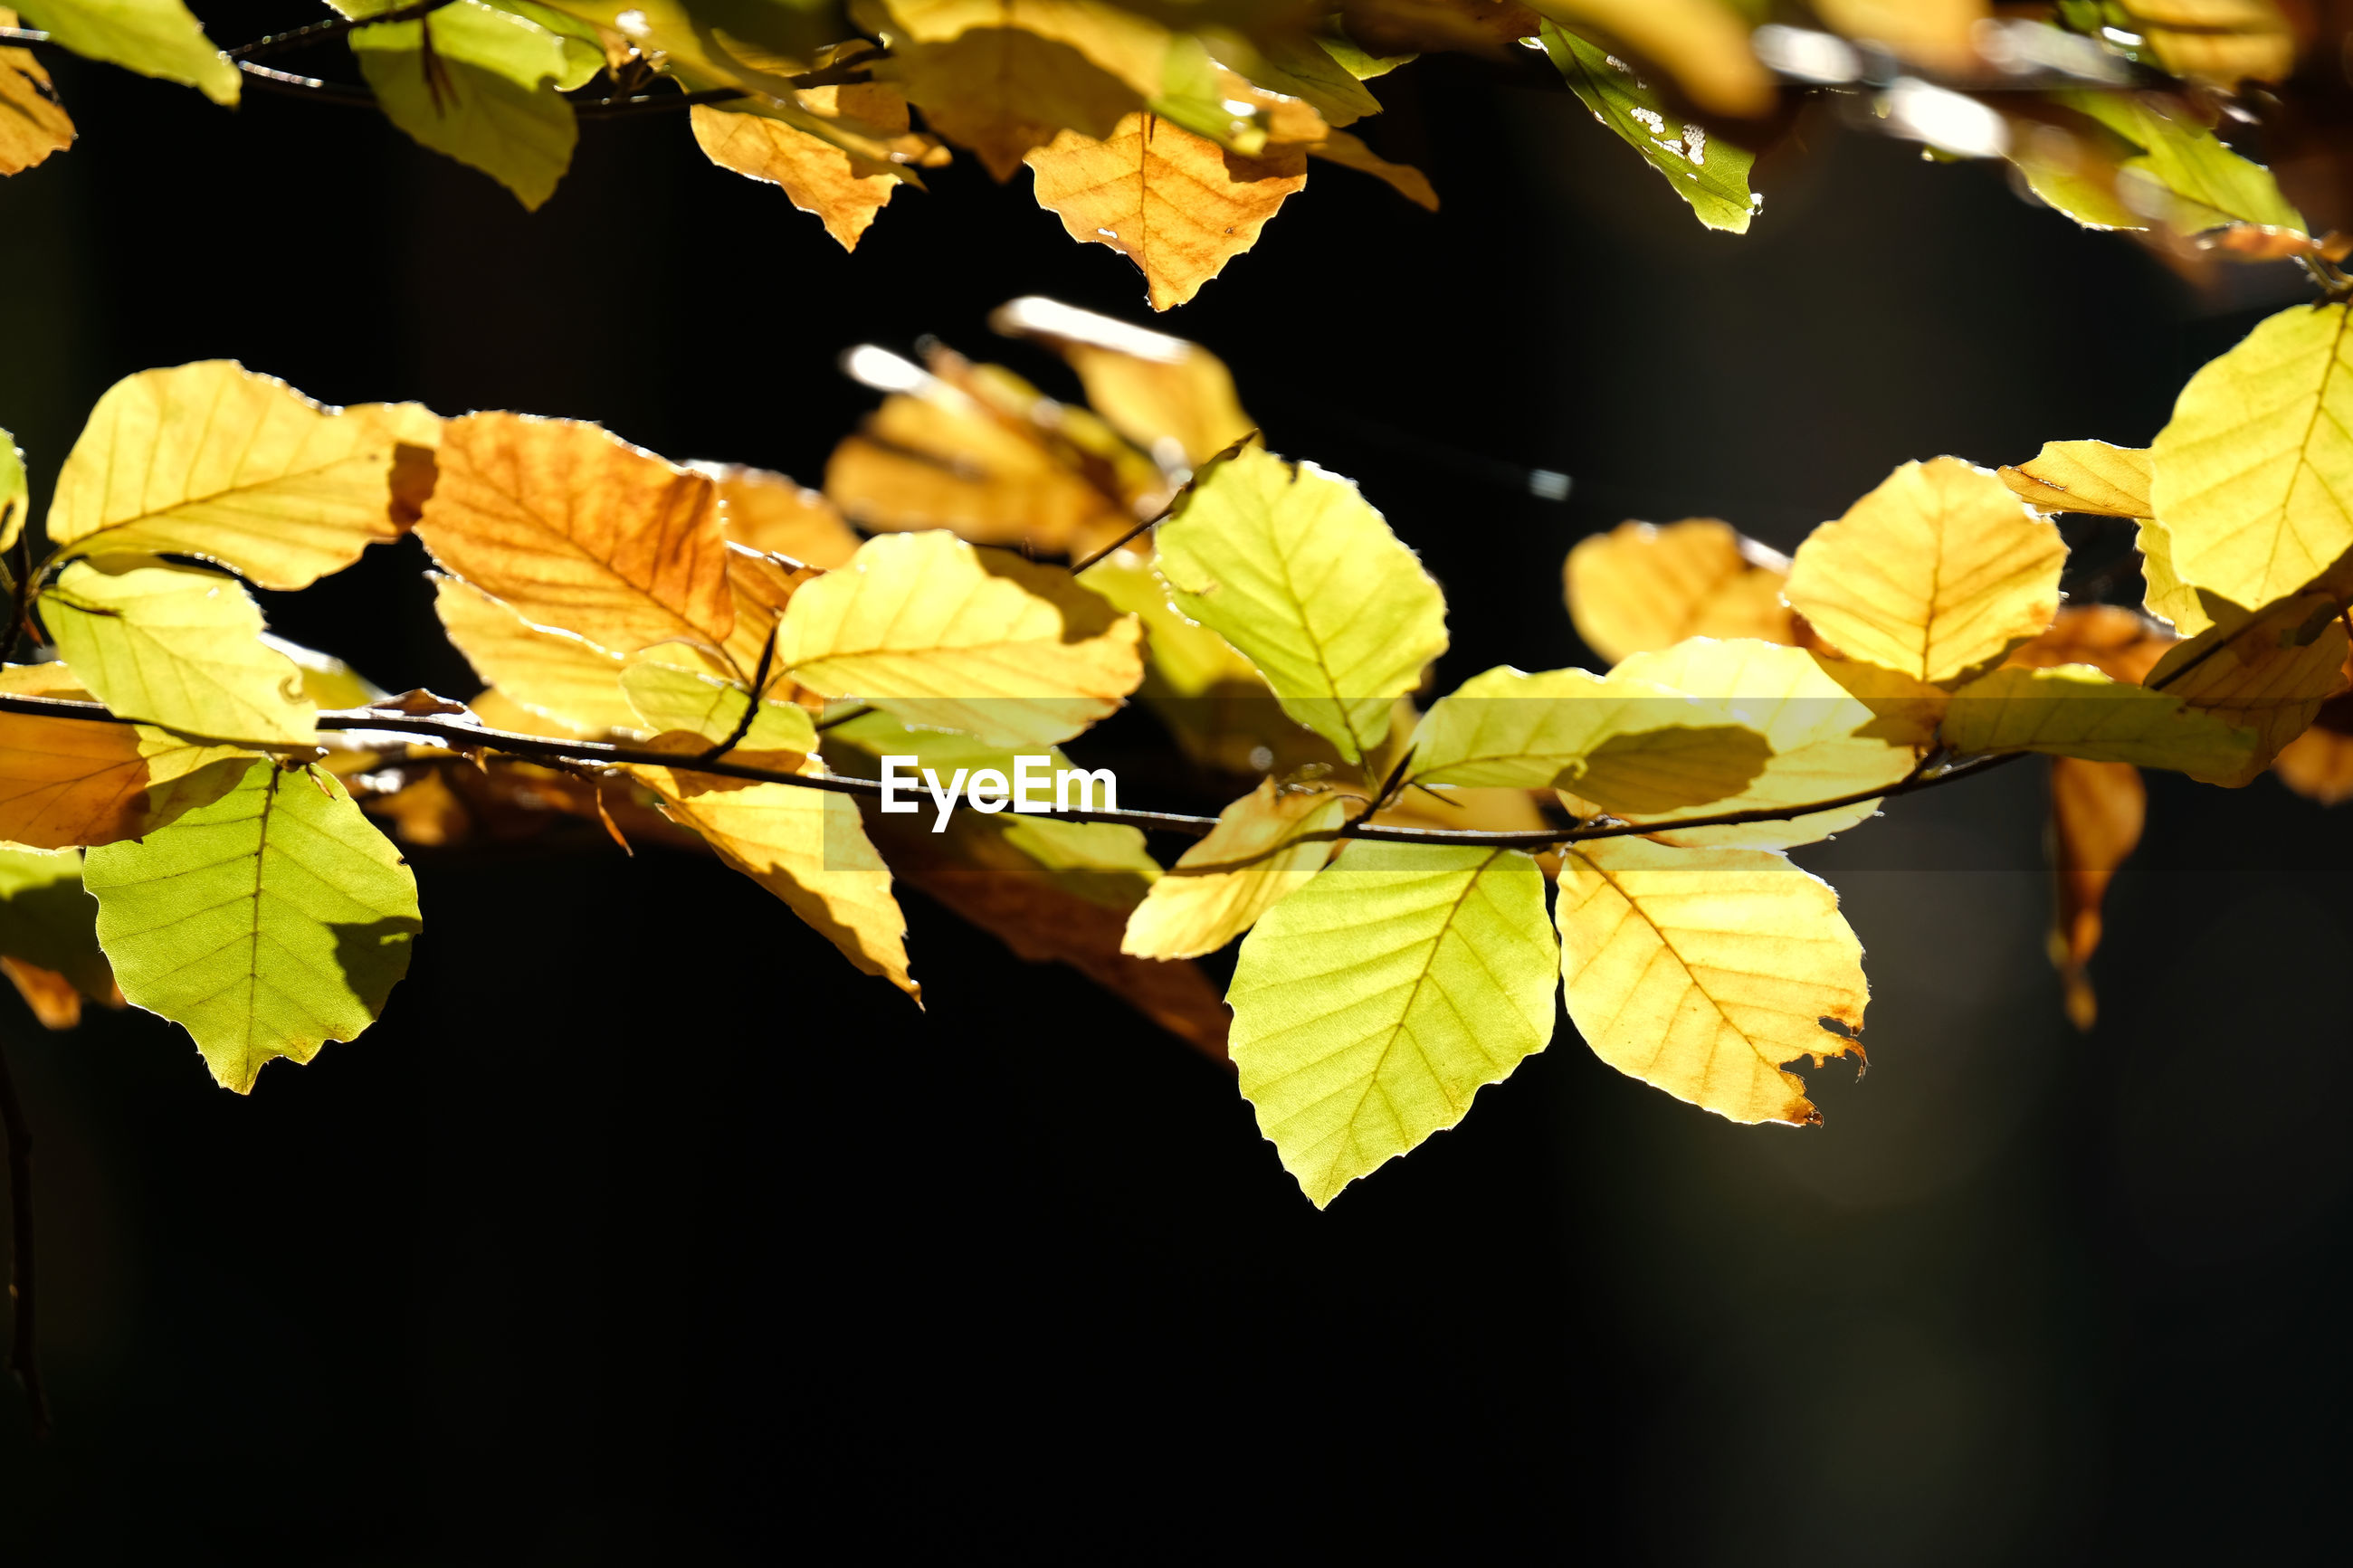 Beech branches with green yellow brown leaves. autumn foreground and black shadow background.